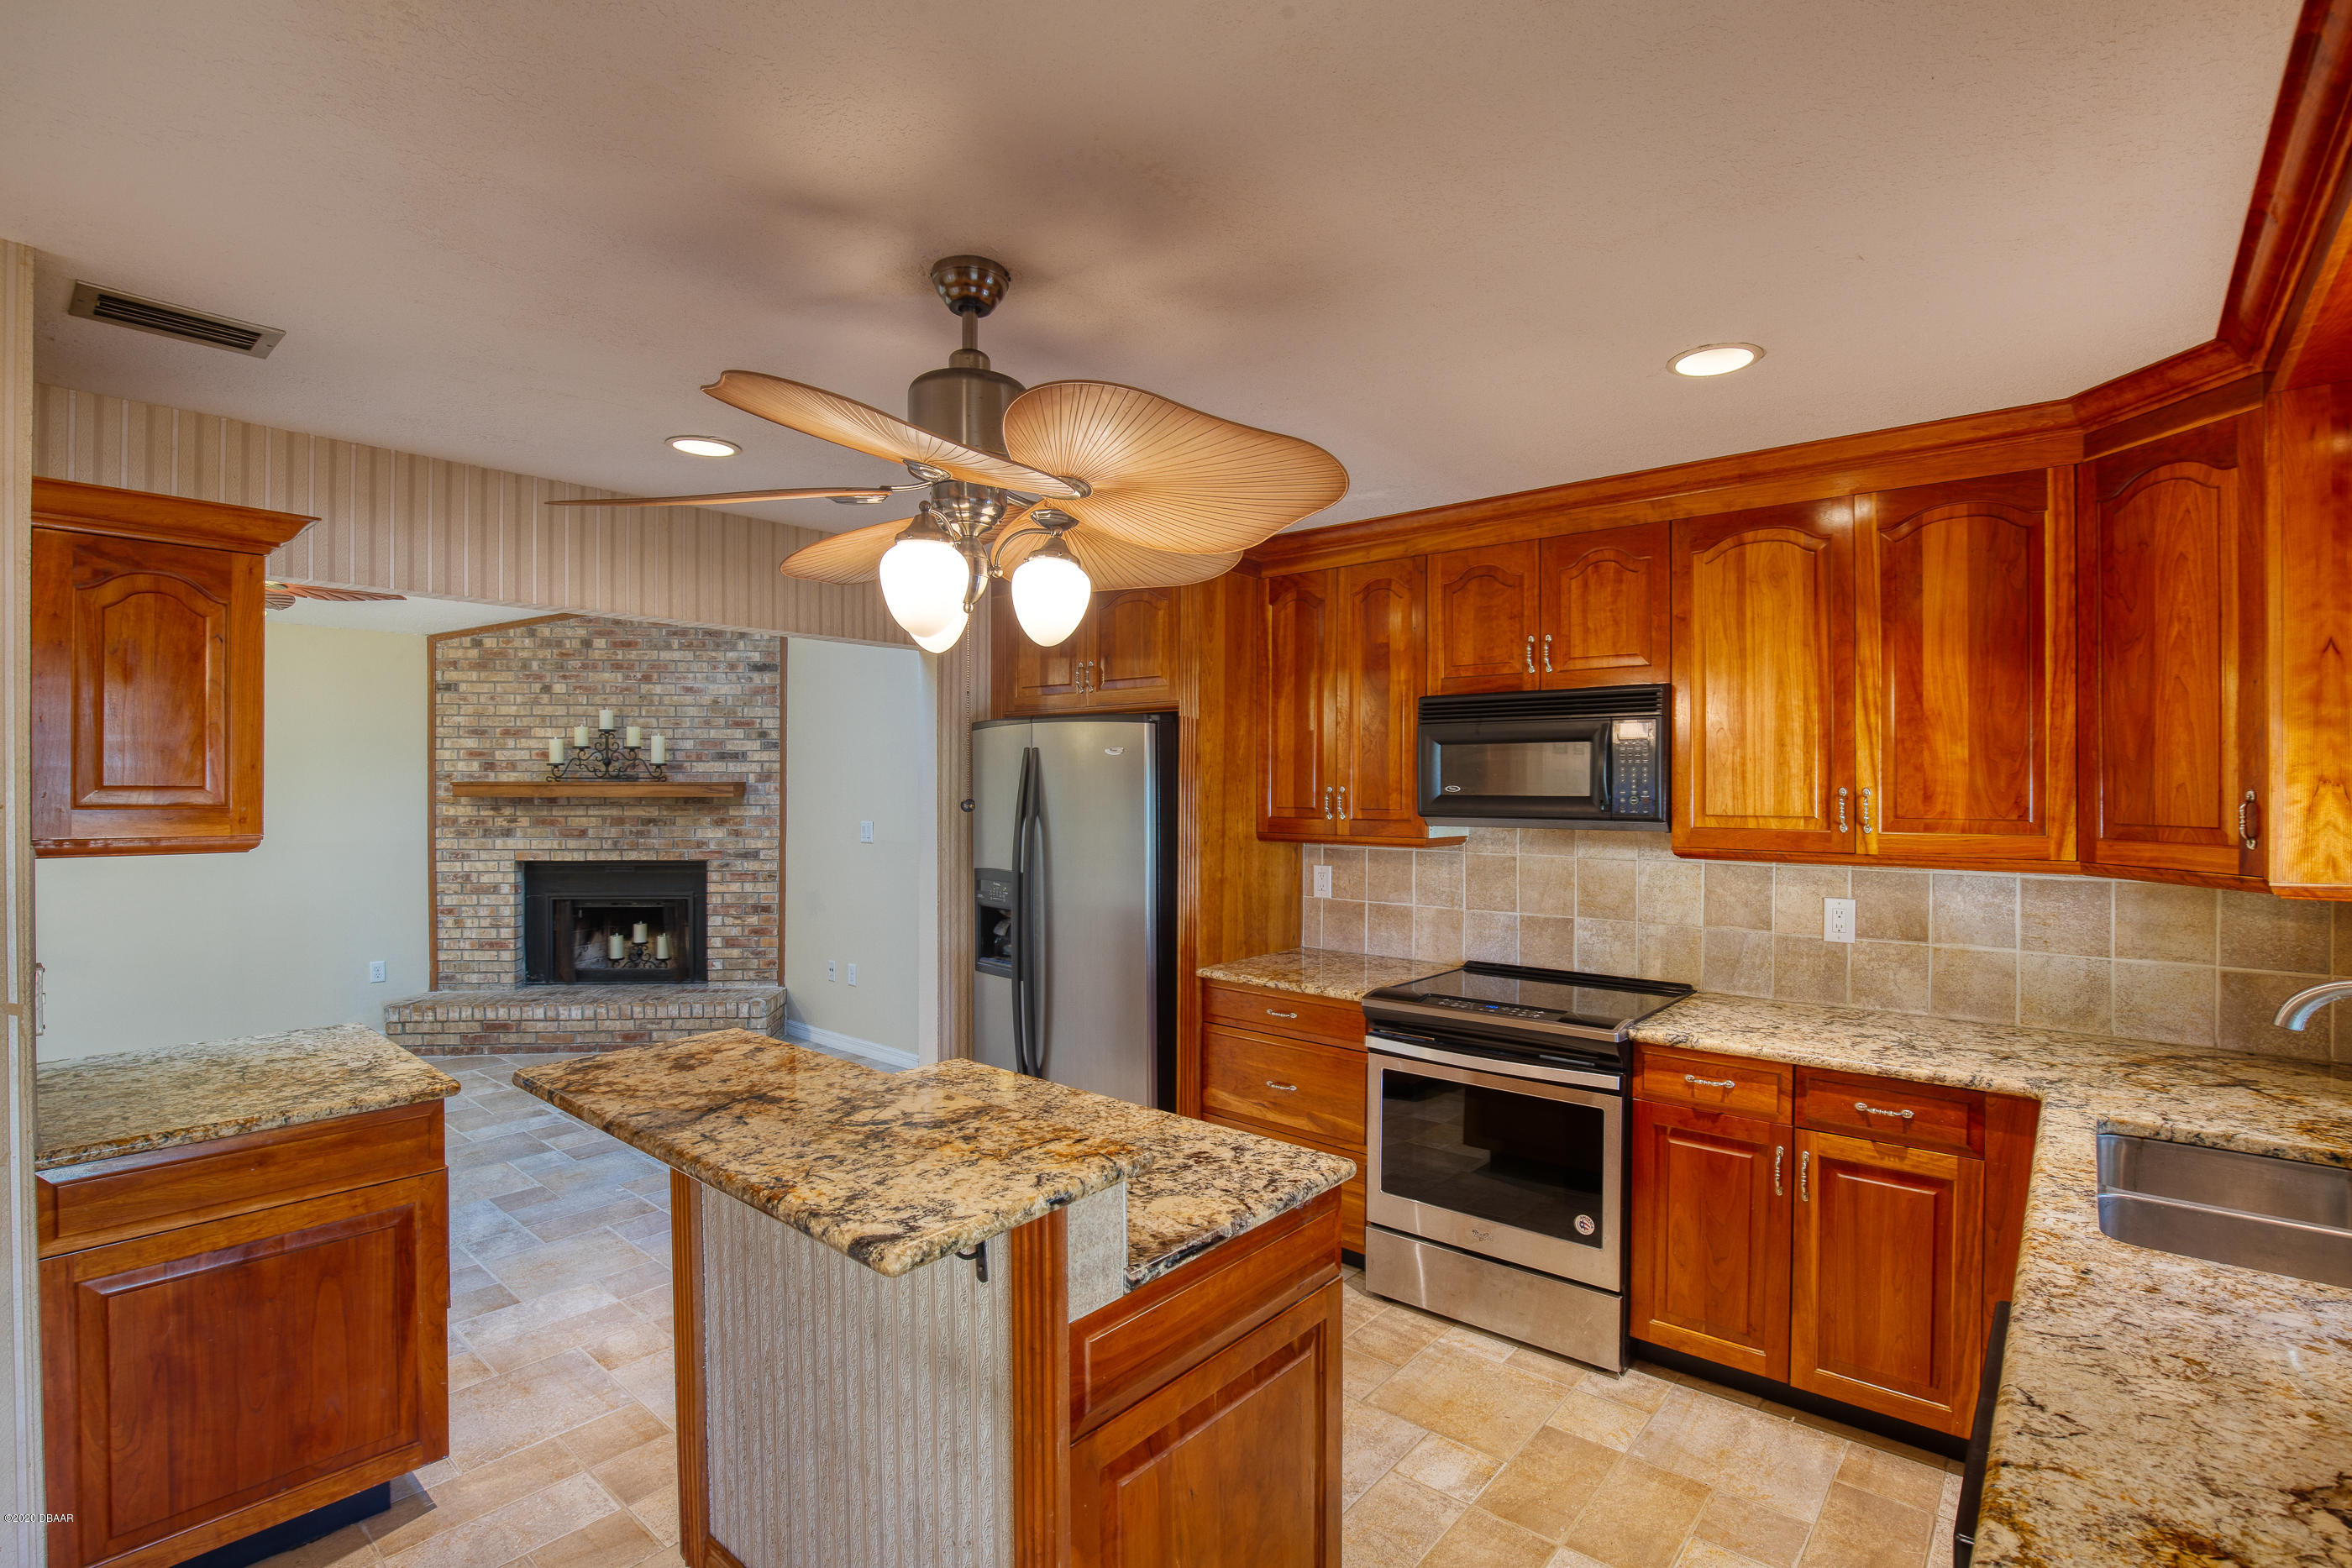 1116 Sherbourne Ormond Beach - 4